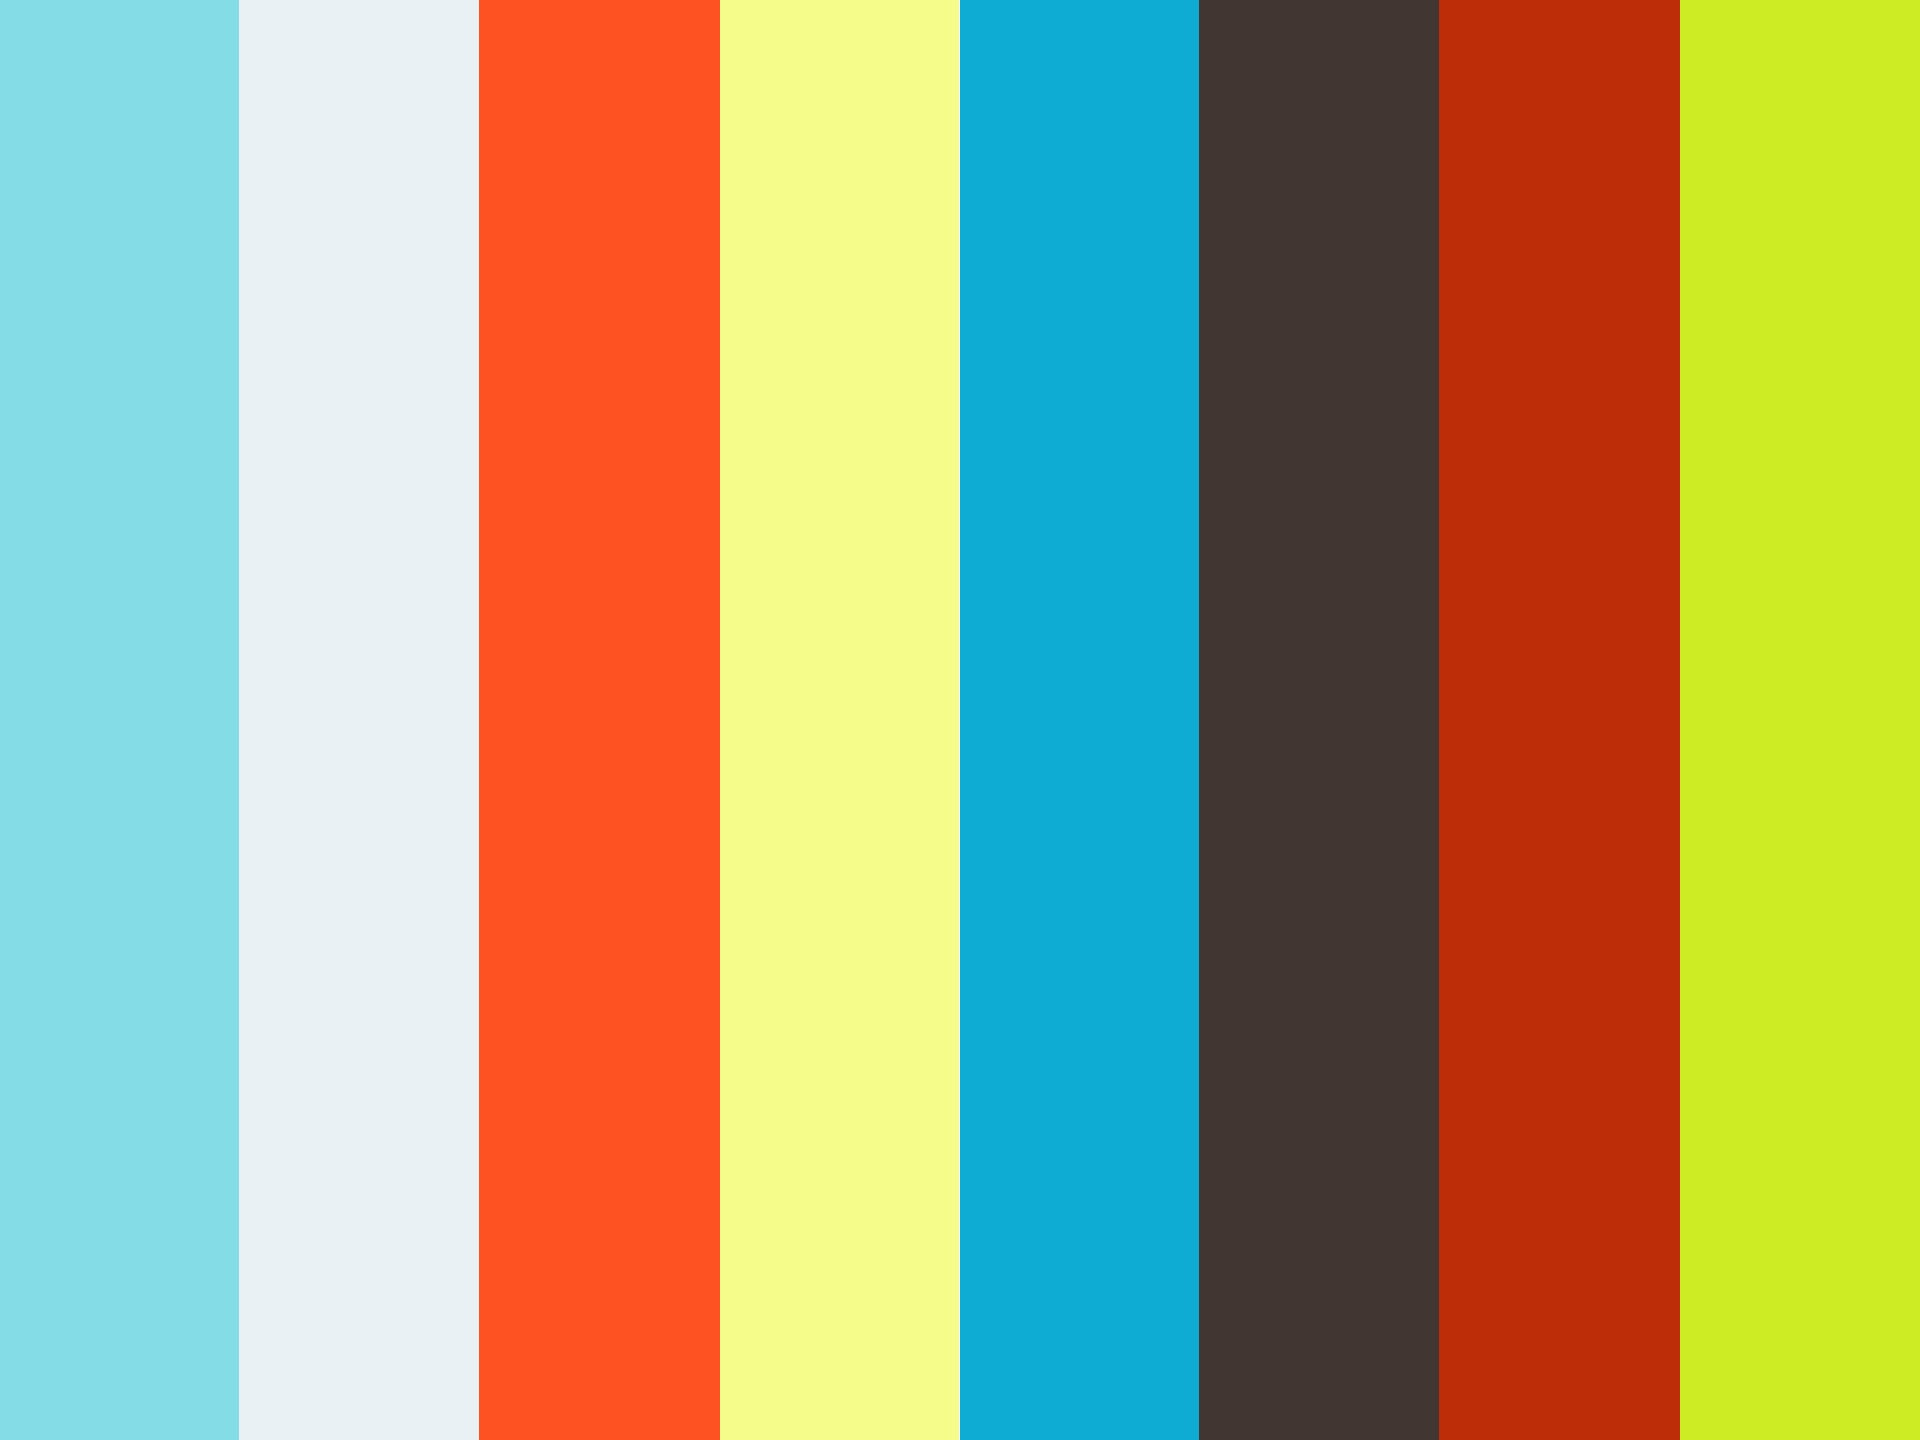 Laparoscopic TME: The Ideal First Asst for Mid and Distal Rectal Dissection 2010